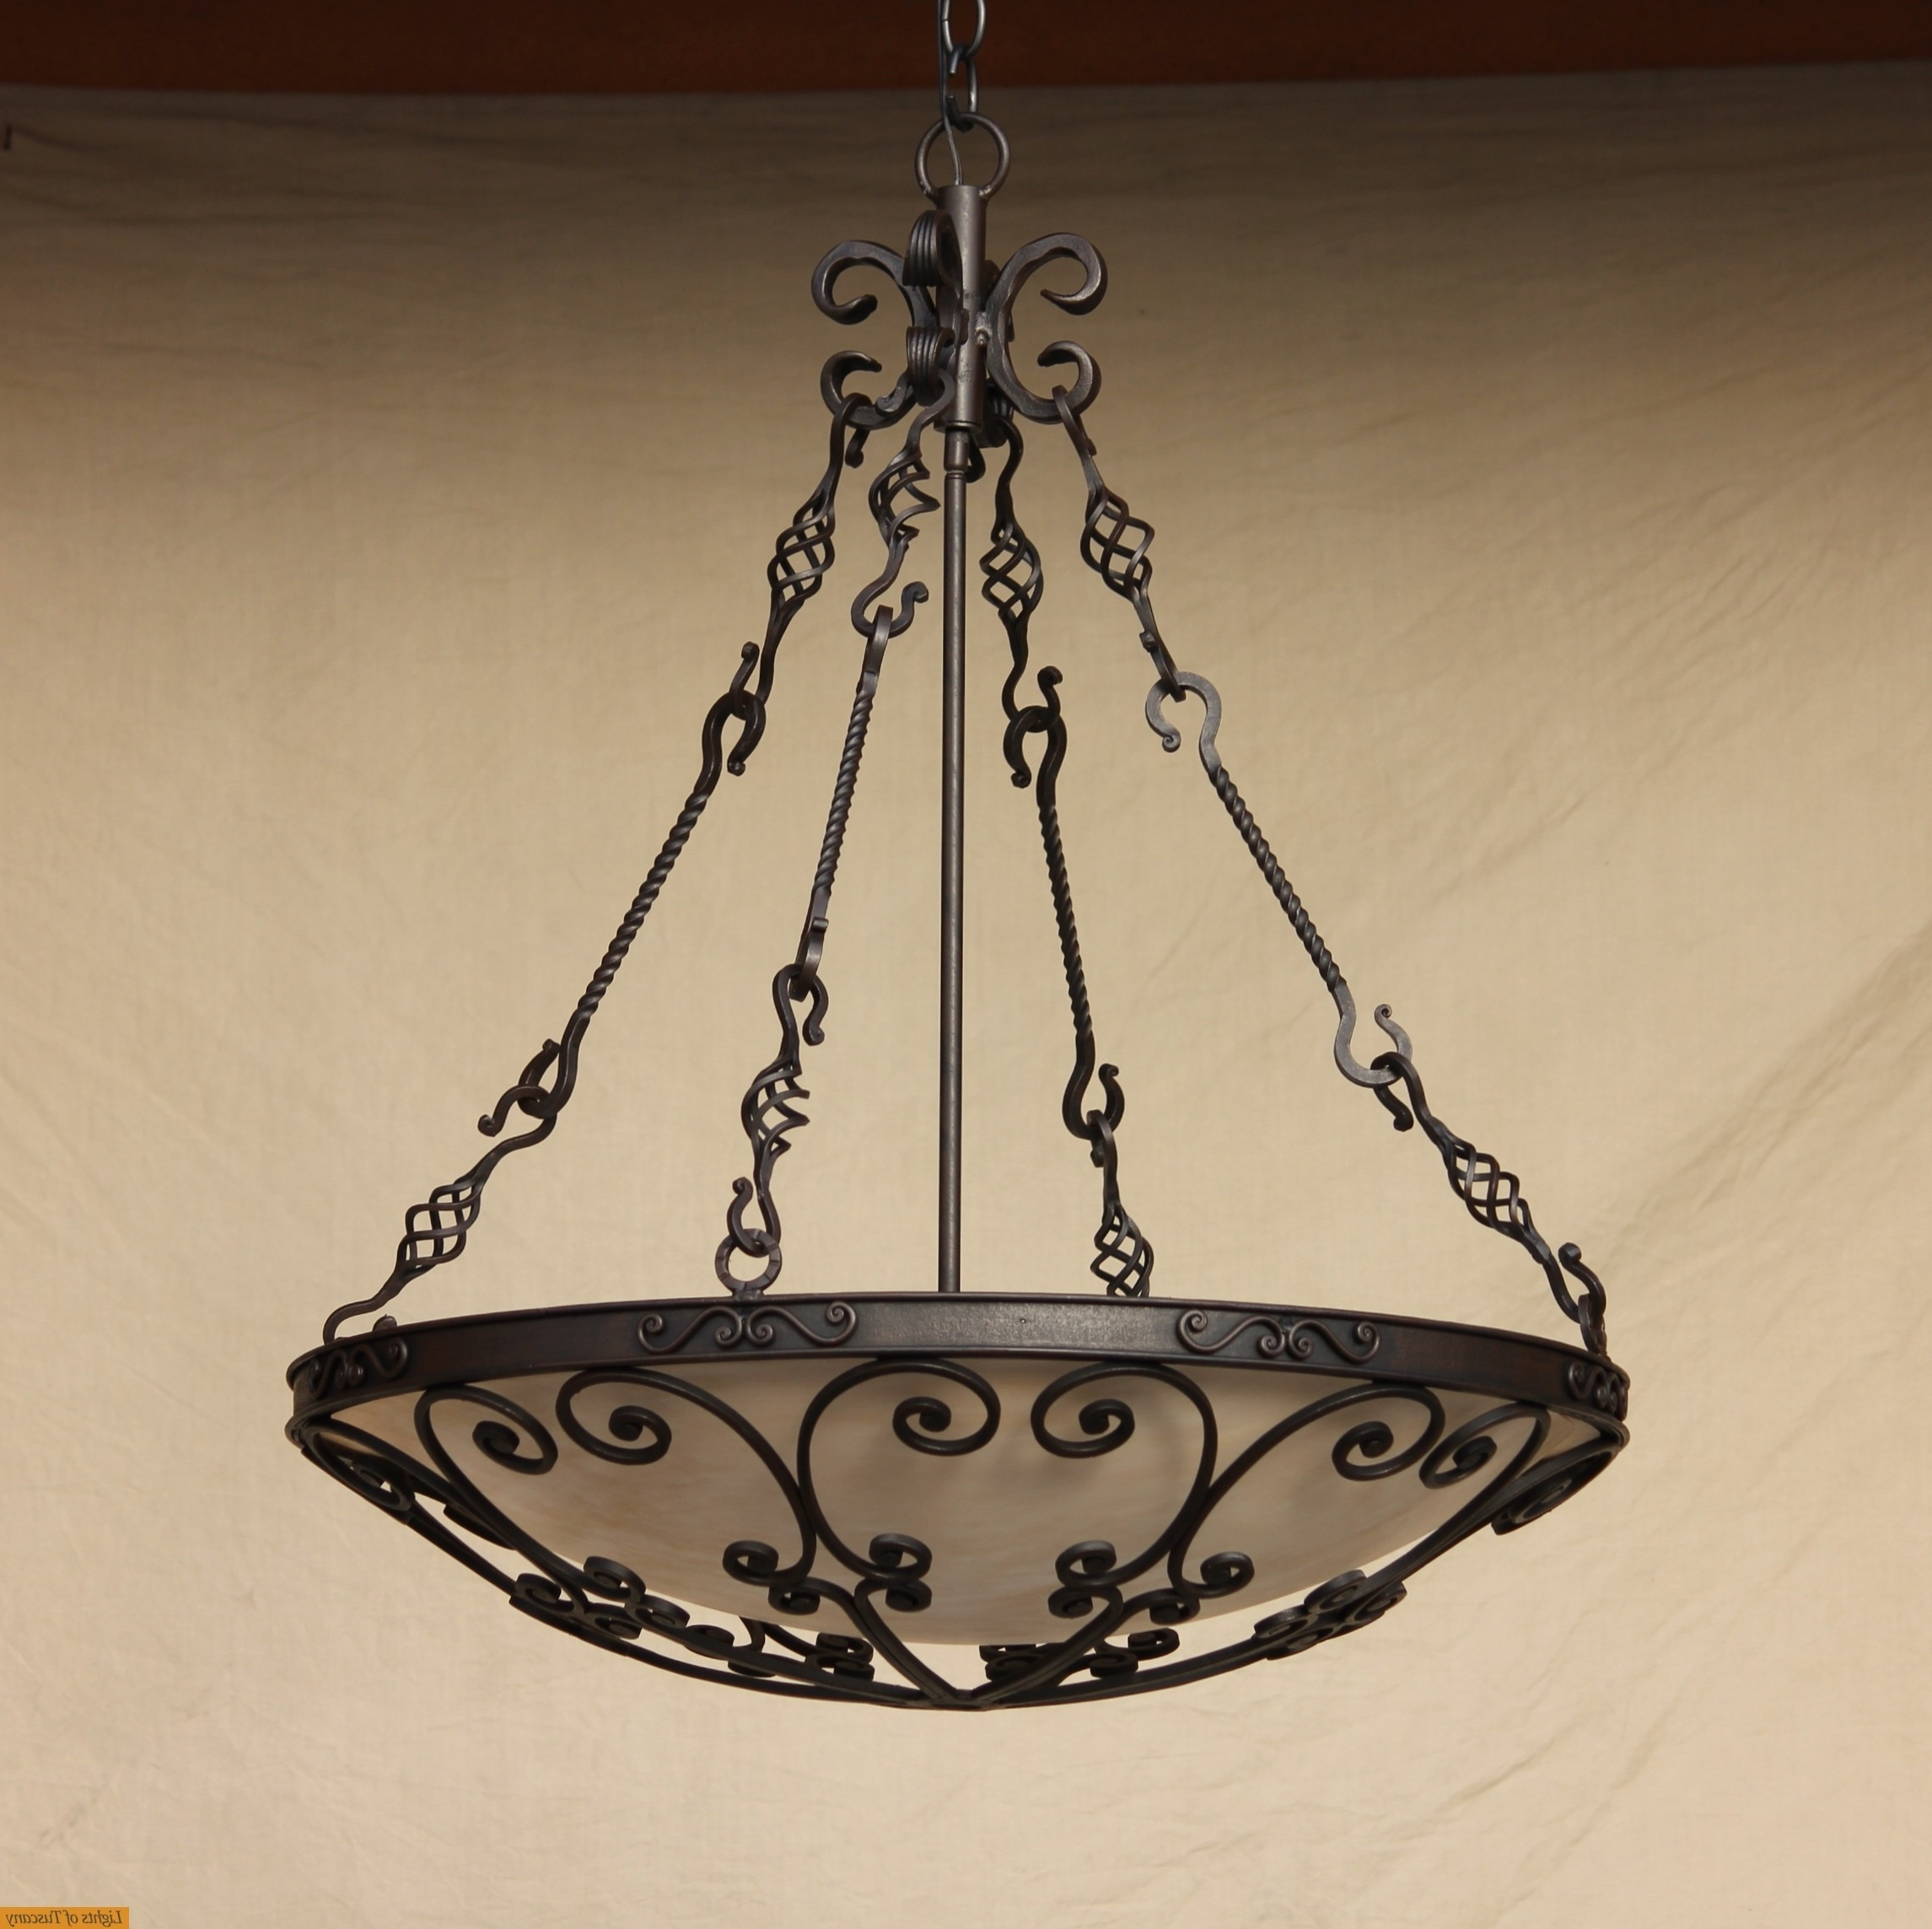 Lights Of Tuscany 2405 6 Mediterranean /spanish Style Wrought Iron Regarding Most Popular Outdoor Iron Hanging Lights (View 5 of 20)